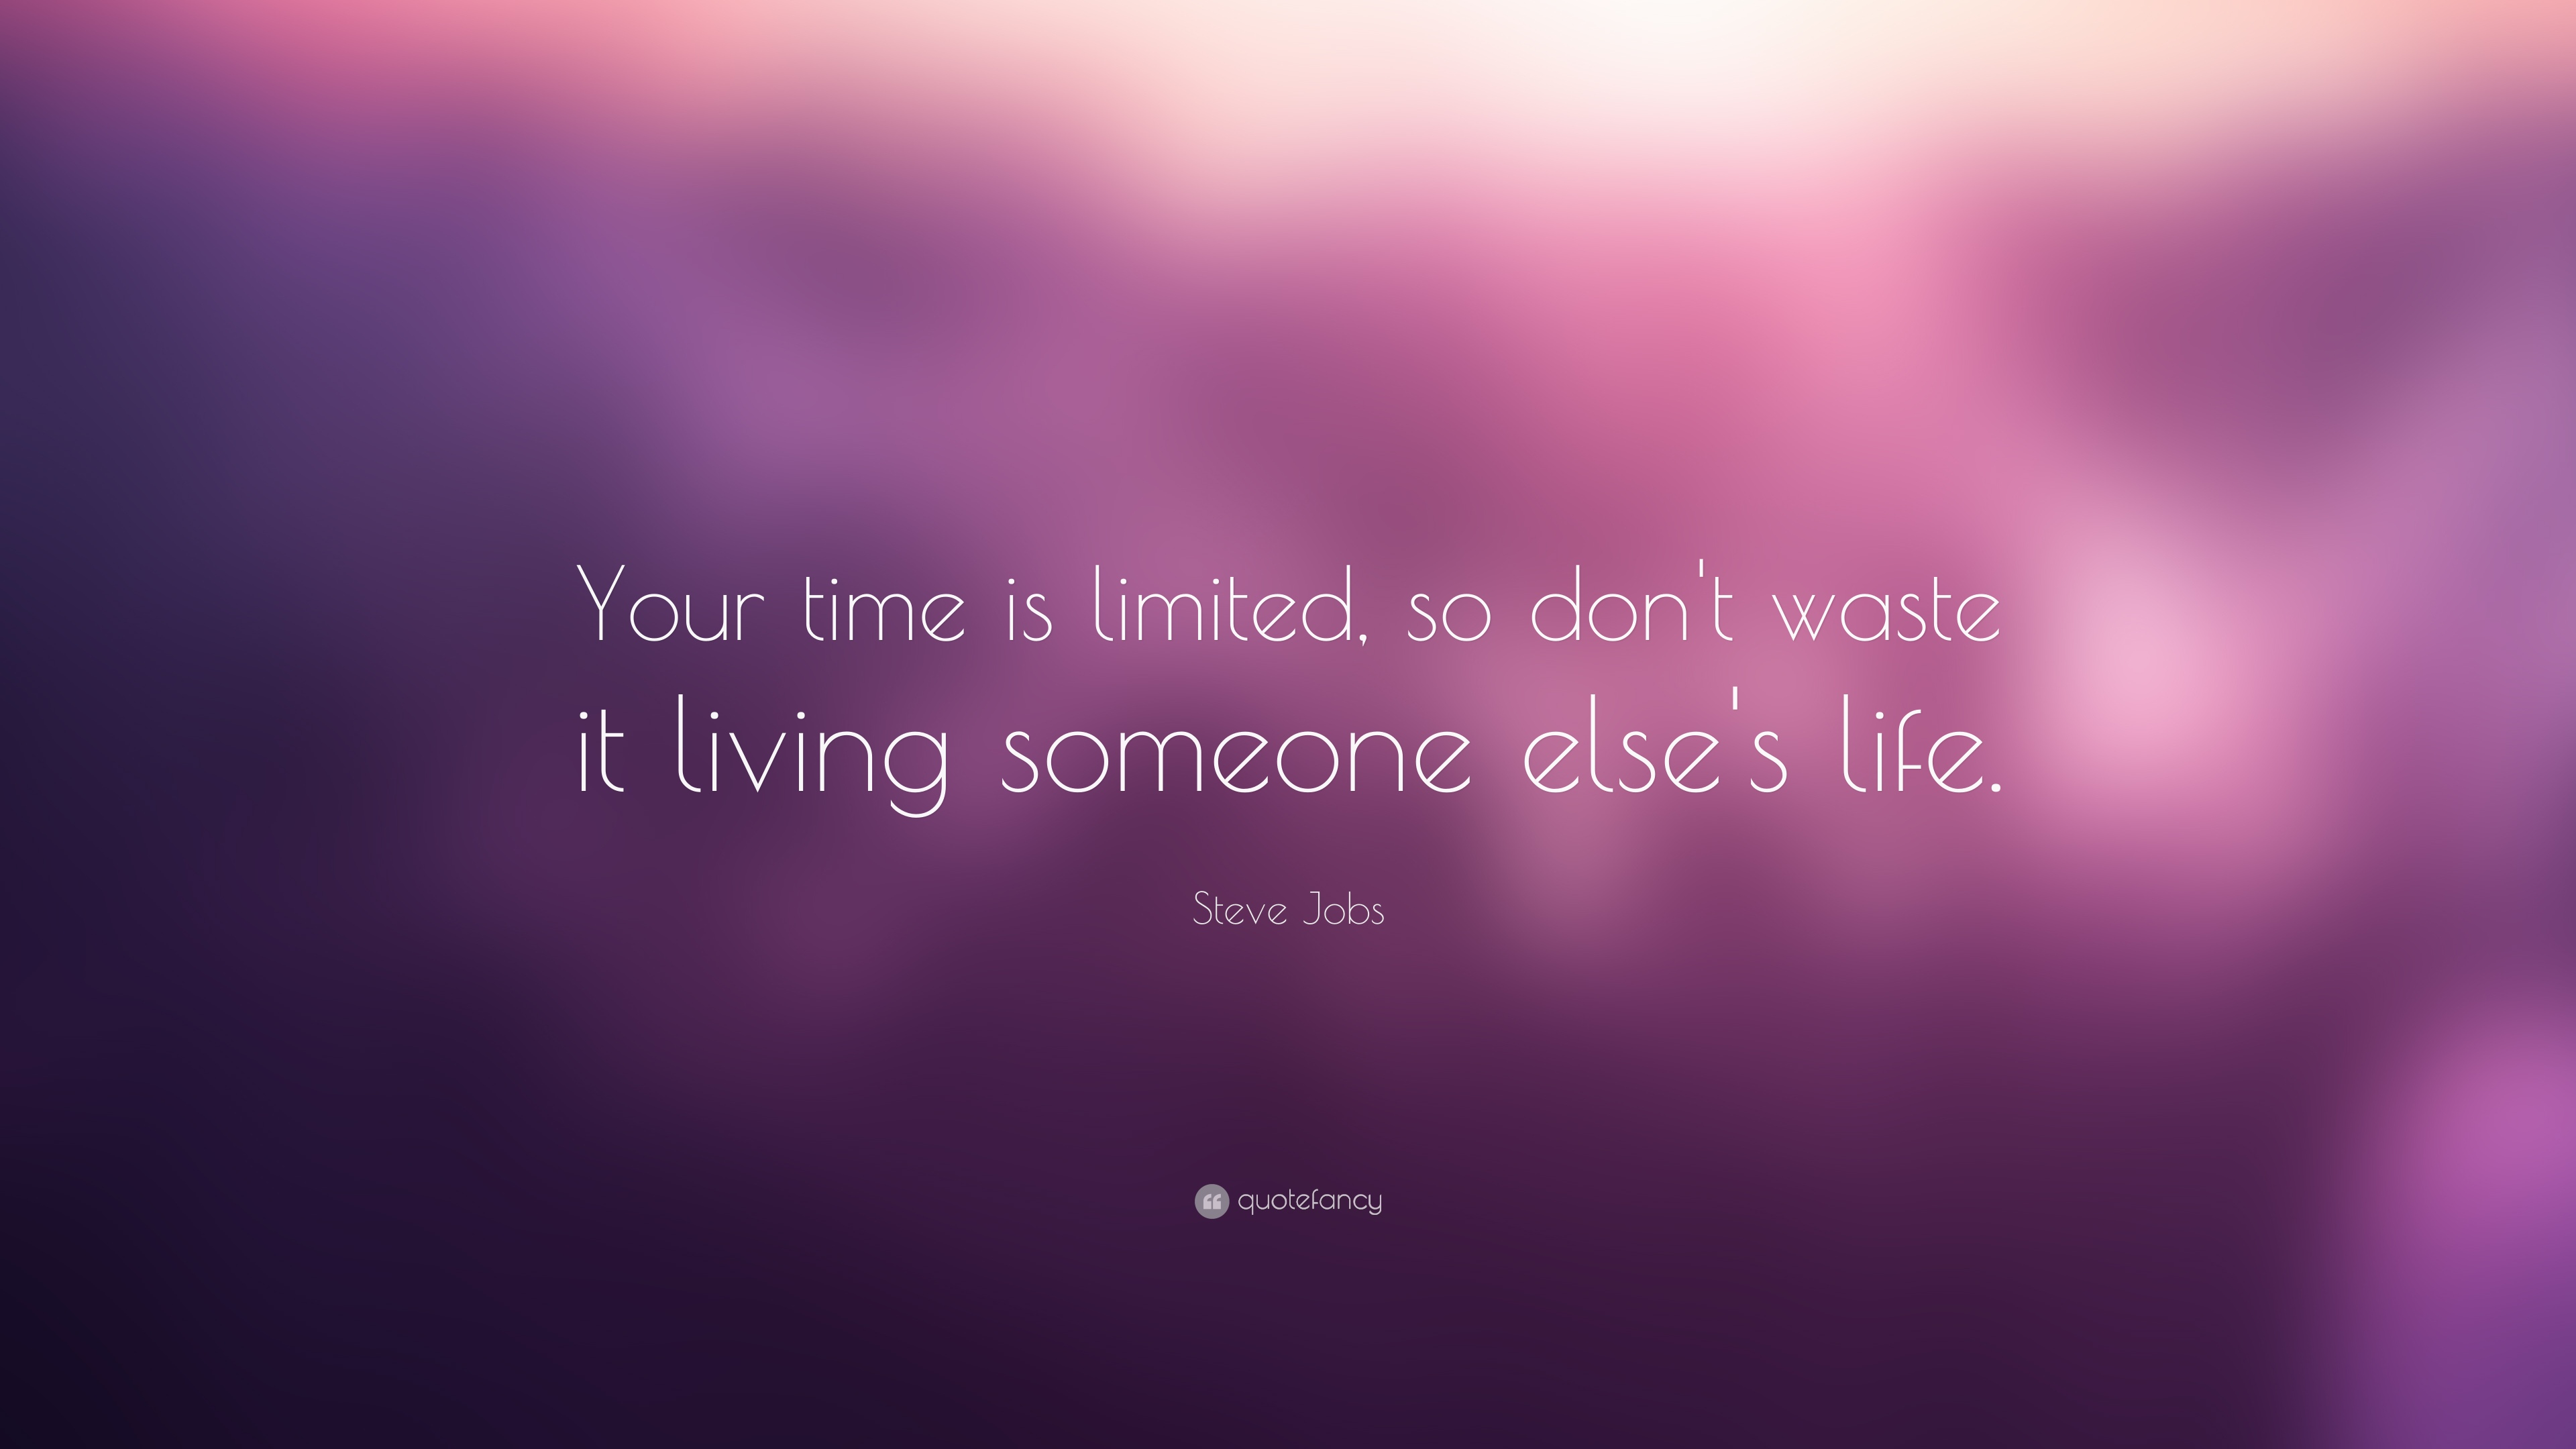 Steve Jobs Quotes Your Time Is Limited Wallpaper Steve Jobs Quote Your Time Is Limited So Don T Waste It